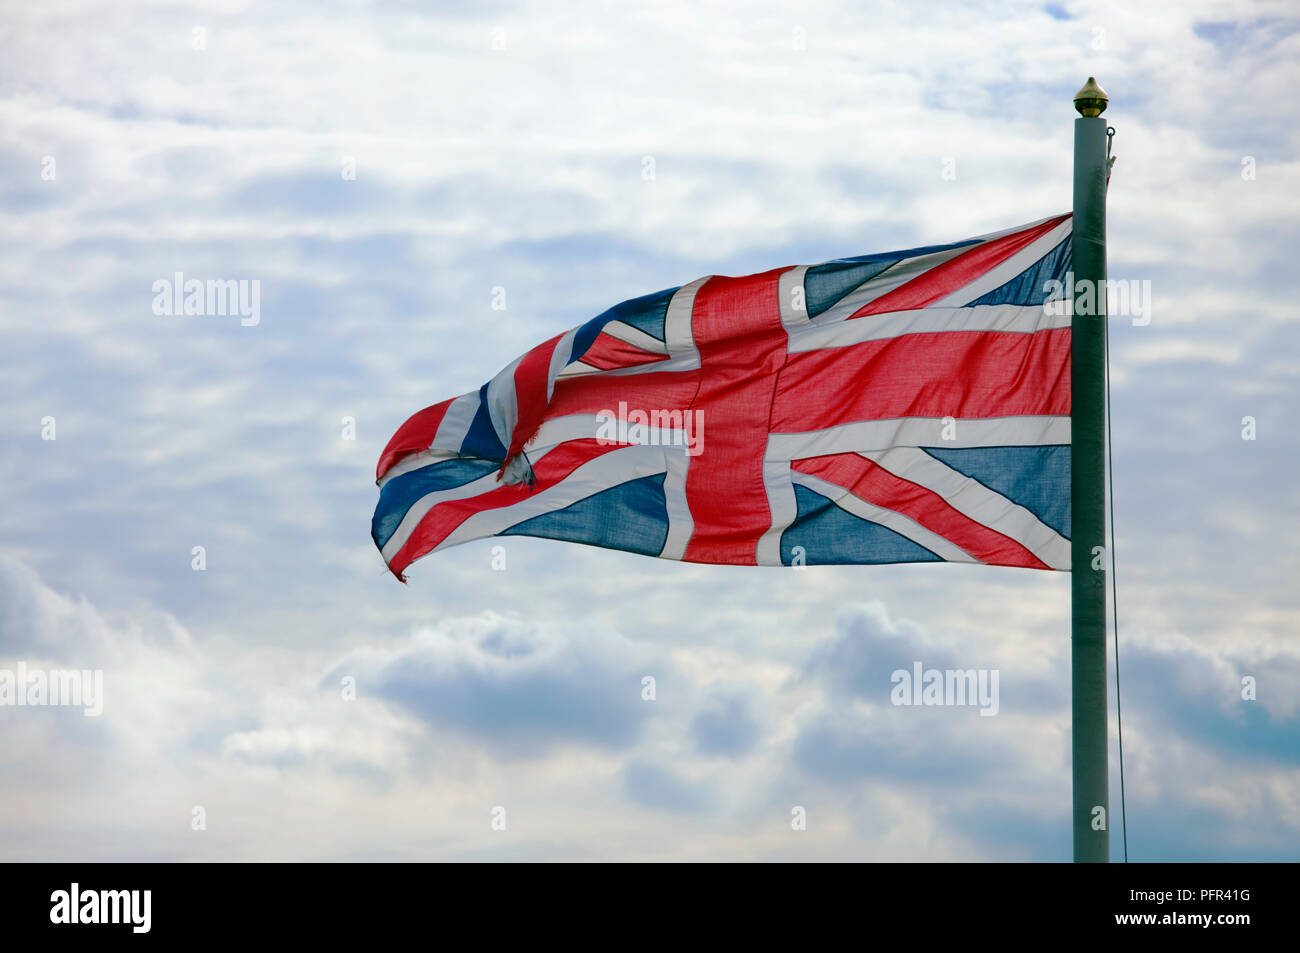 Union Jack against cloudy sky, close-up - Stock Image